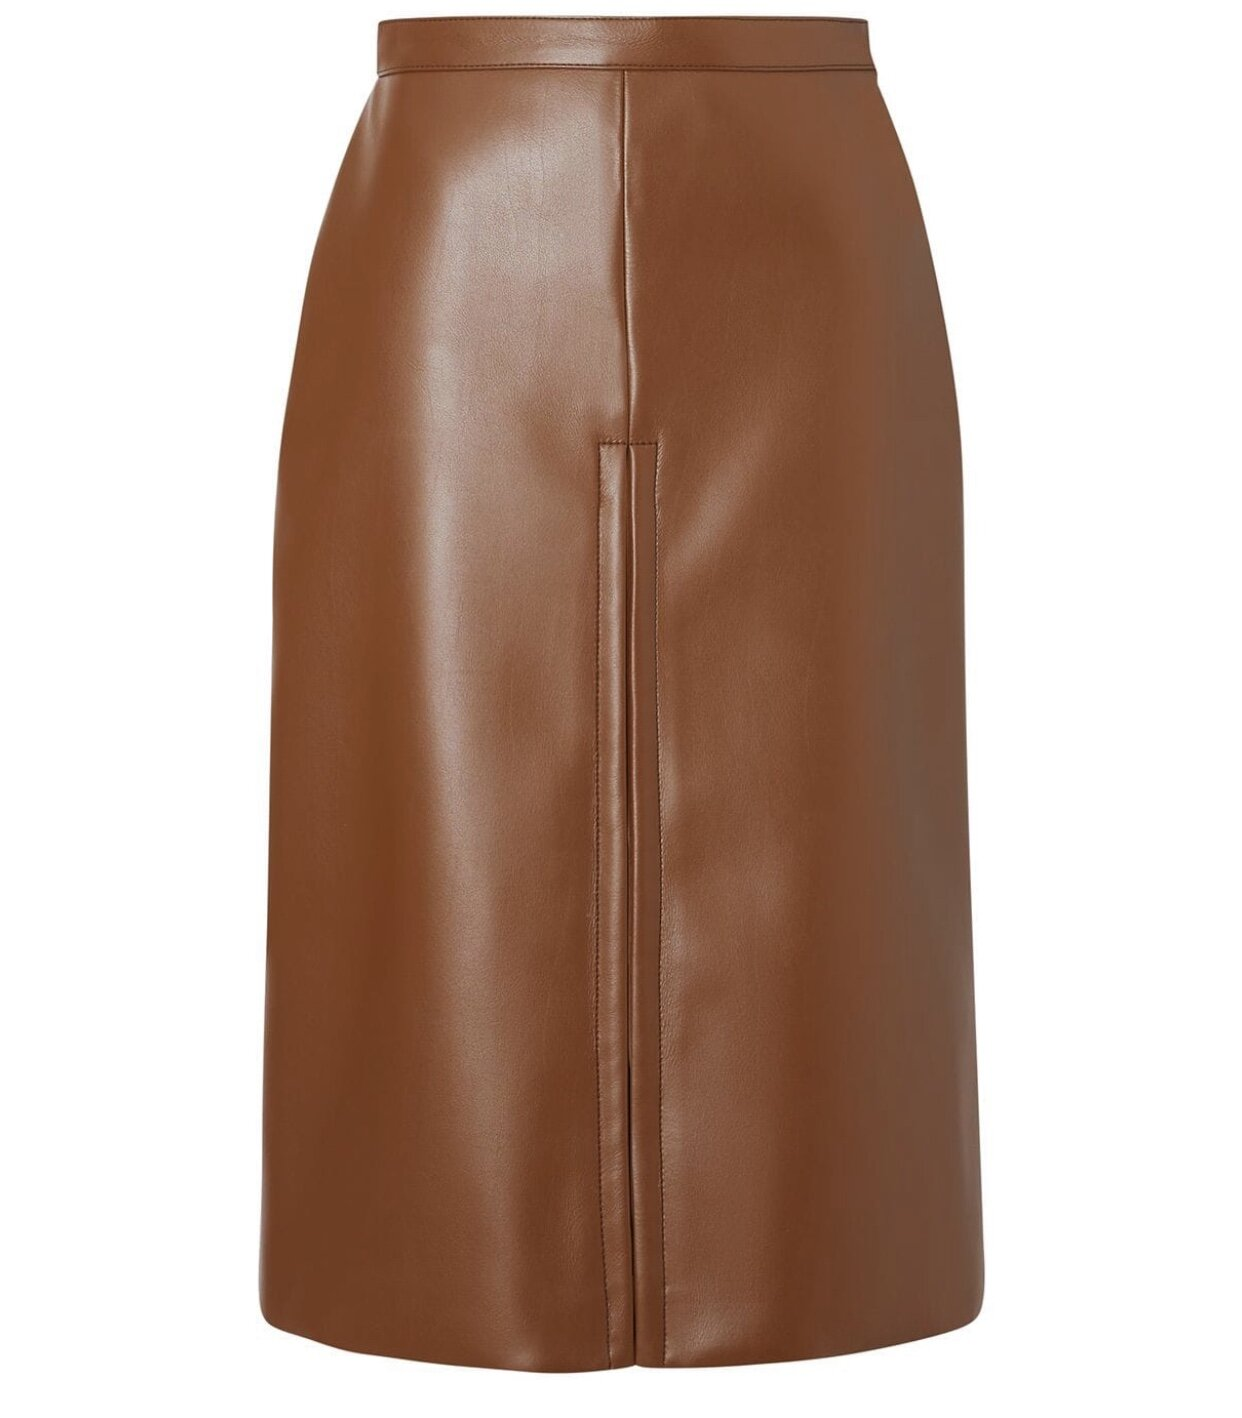 BURBERRY - FAUX LEATHER SKIRT